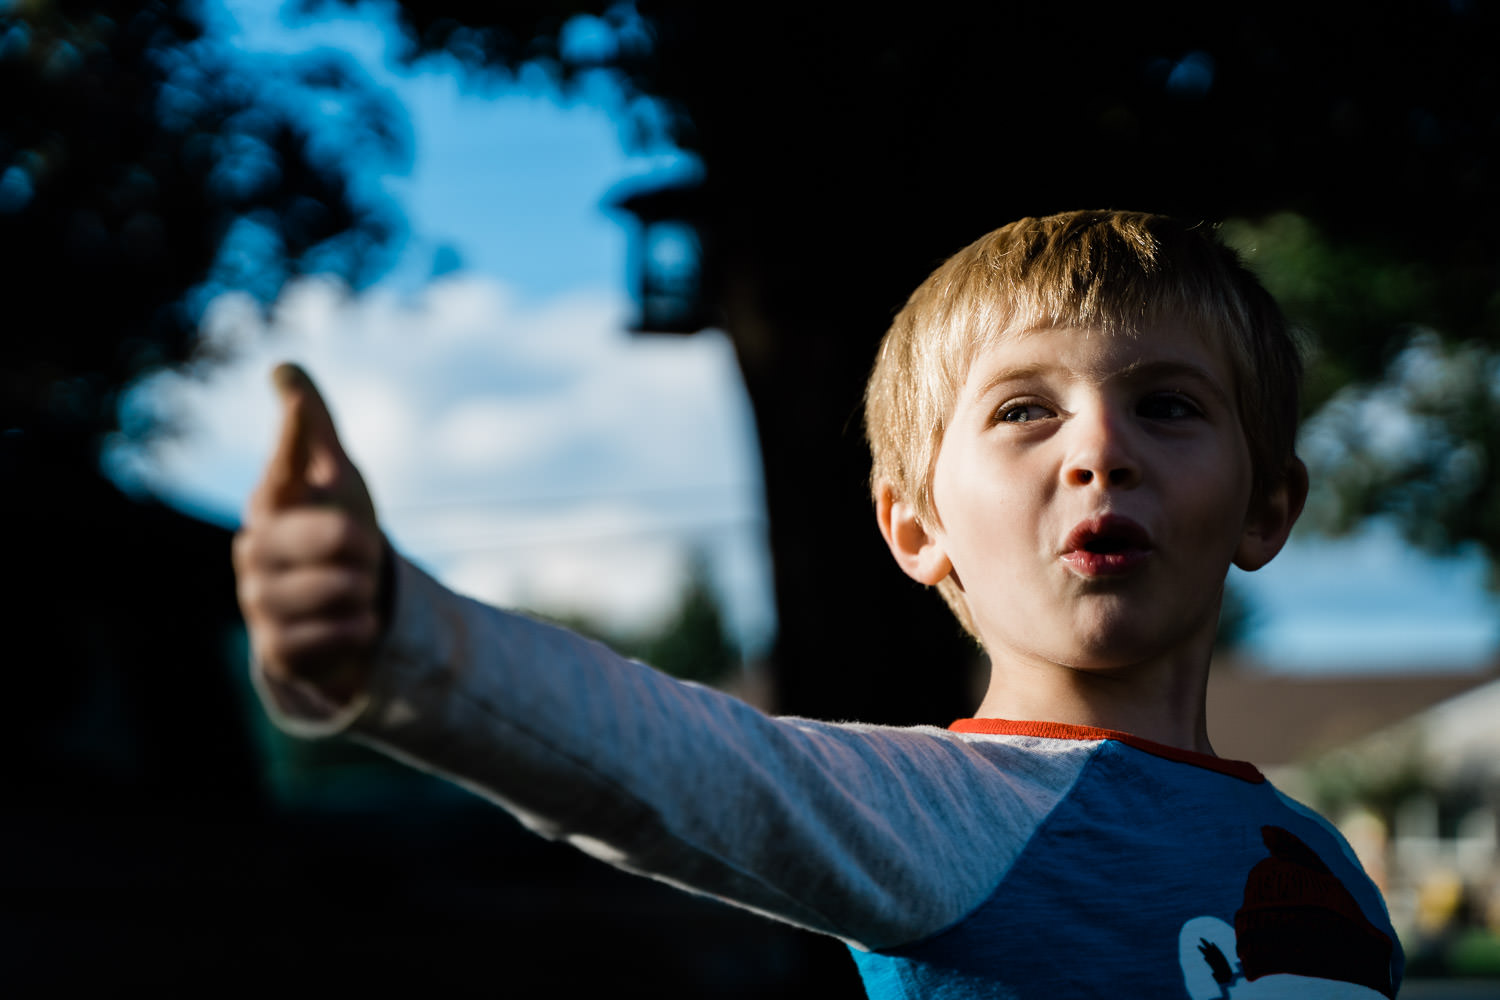 A little boy points in his front yard.